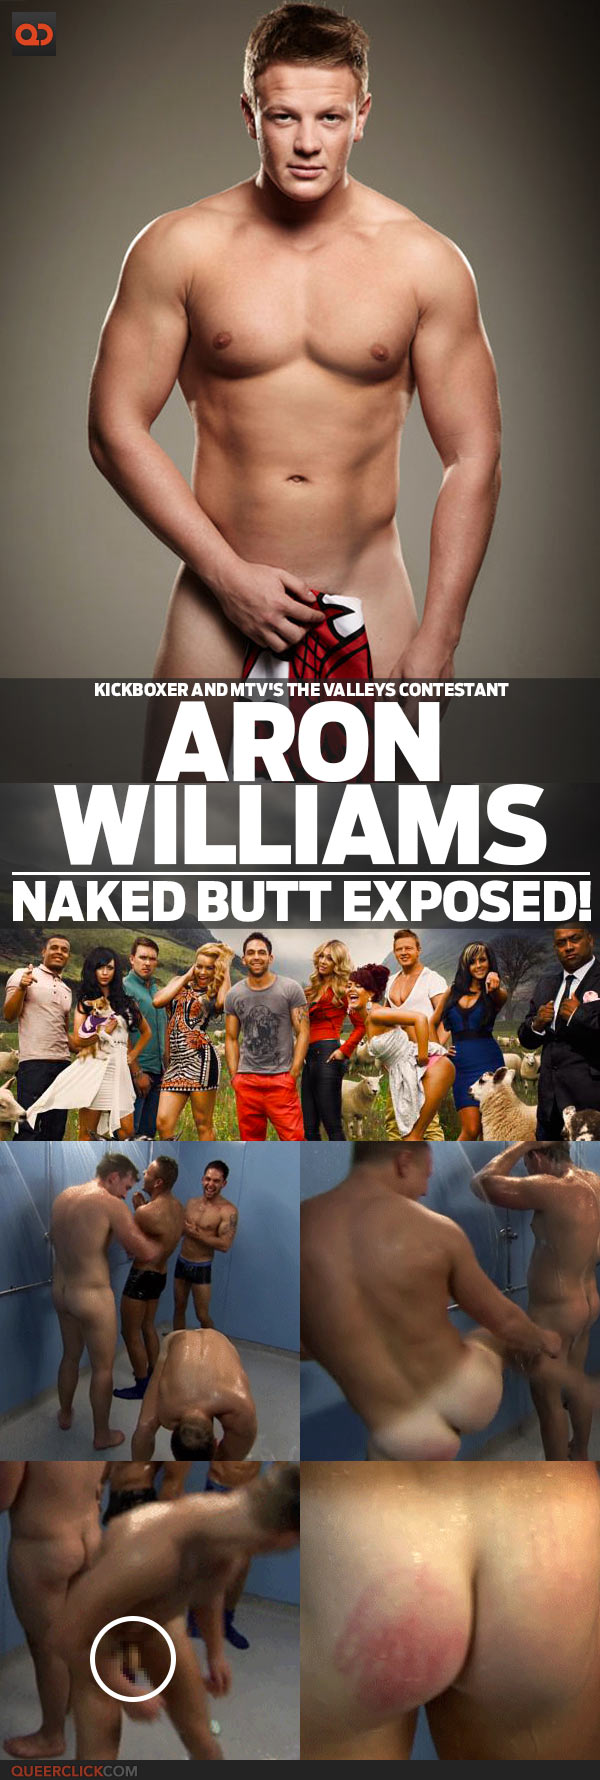 Aron Williams, Kickboxer And Mtv's The Valleys Contestant, Naked Butt Exposed!